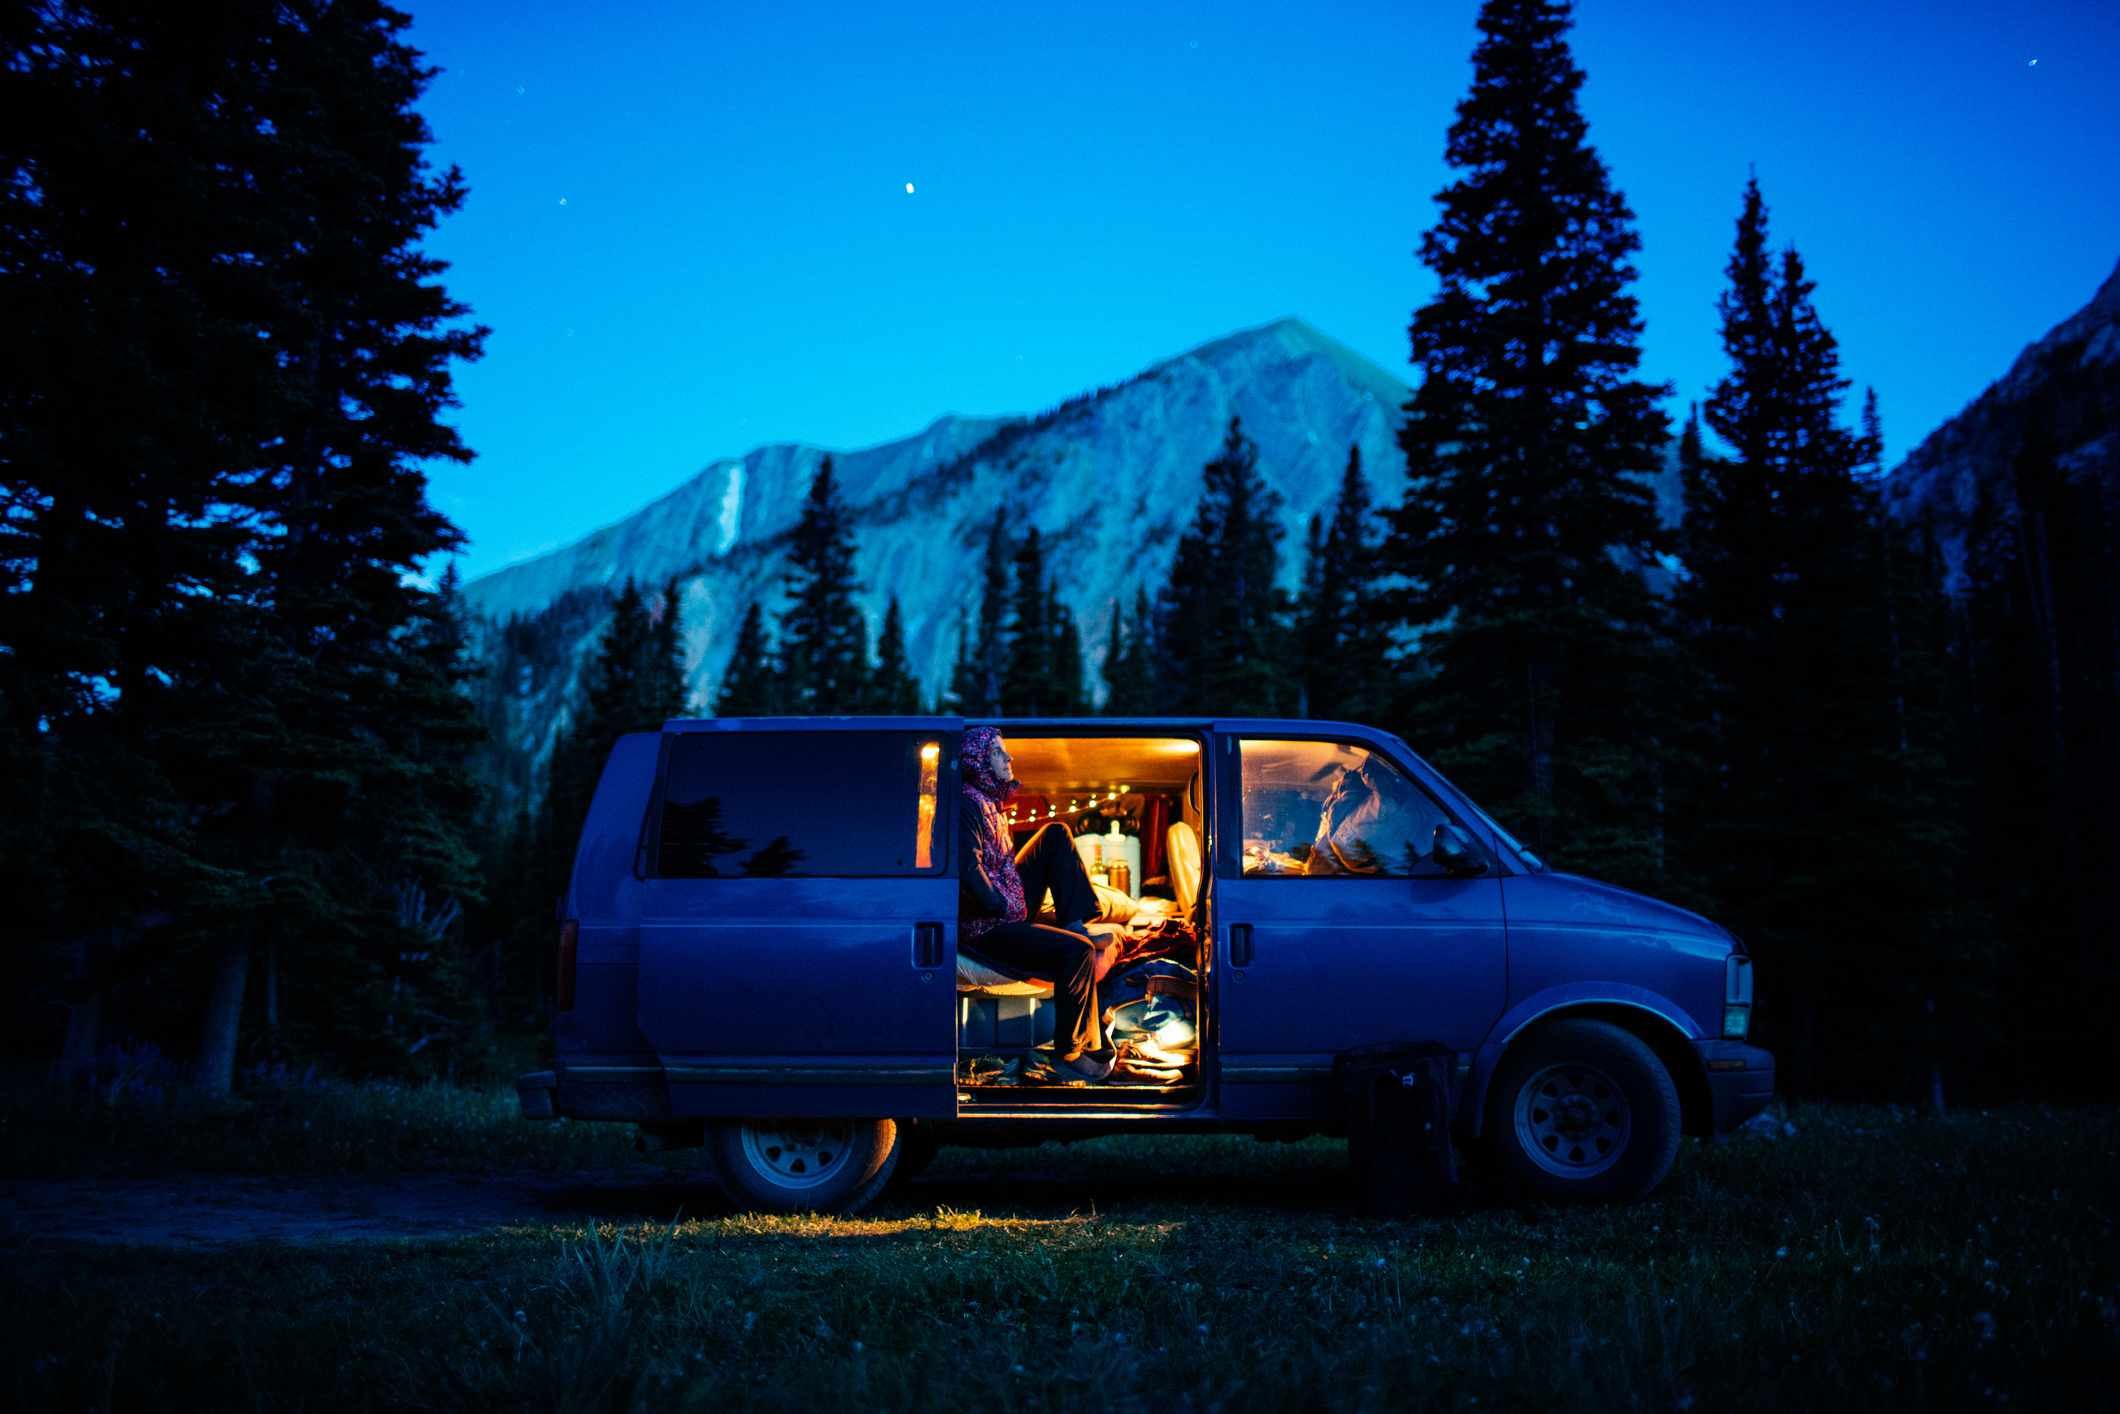 Van camping with mountain view at dusk